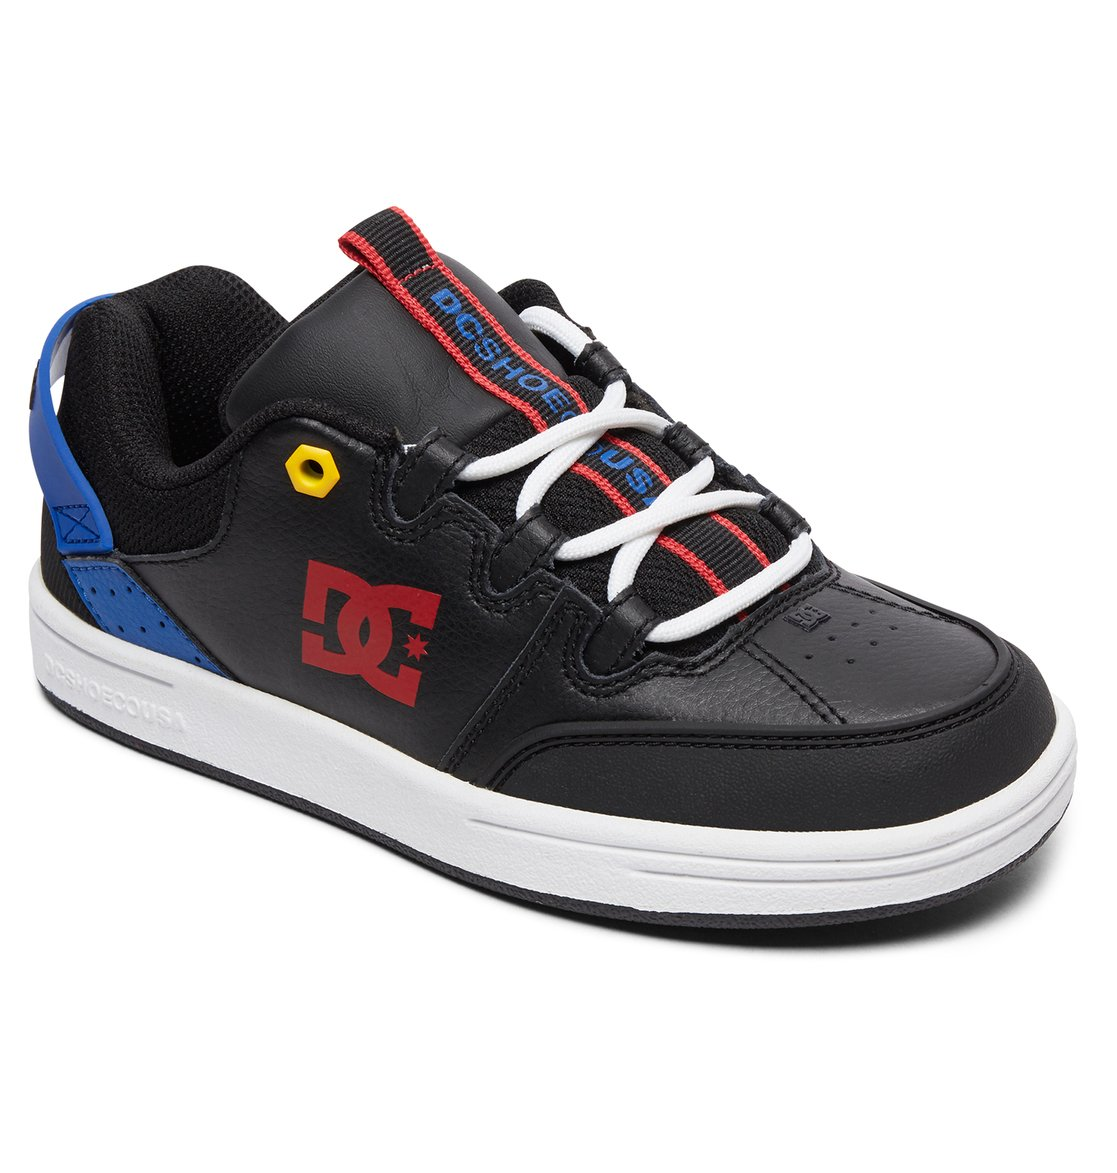 d536c3dcc21 DC-Shoes-Syntax-Shoes-for-Boys-ADBS100257 thumbnail 6